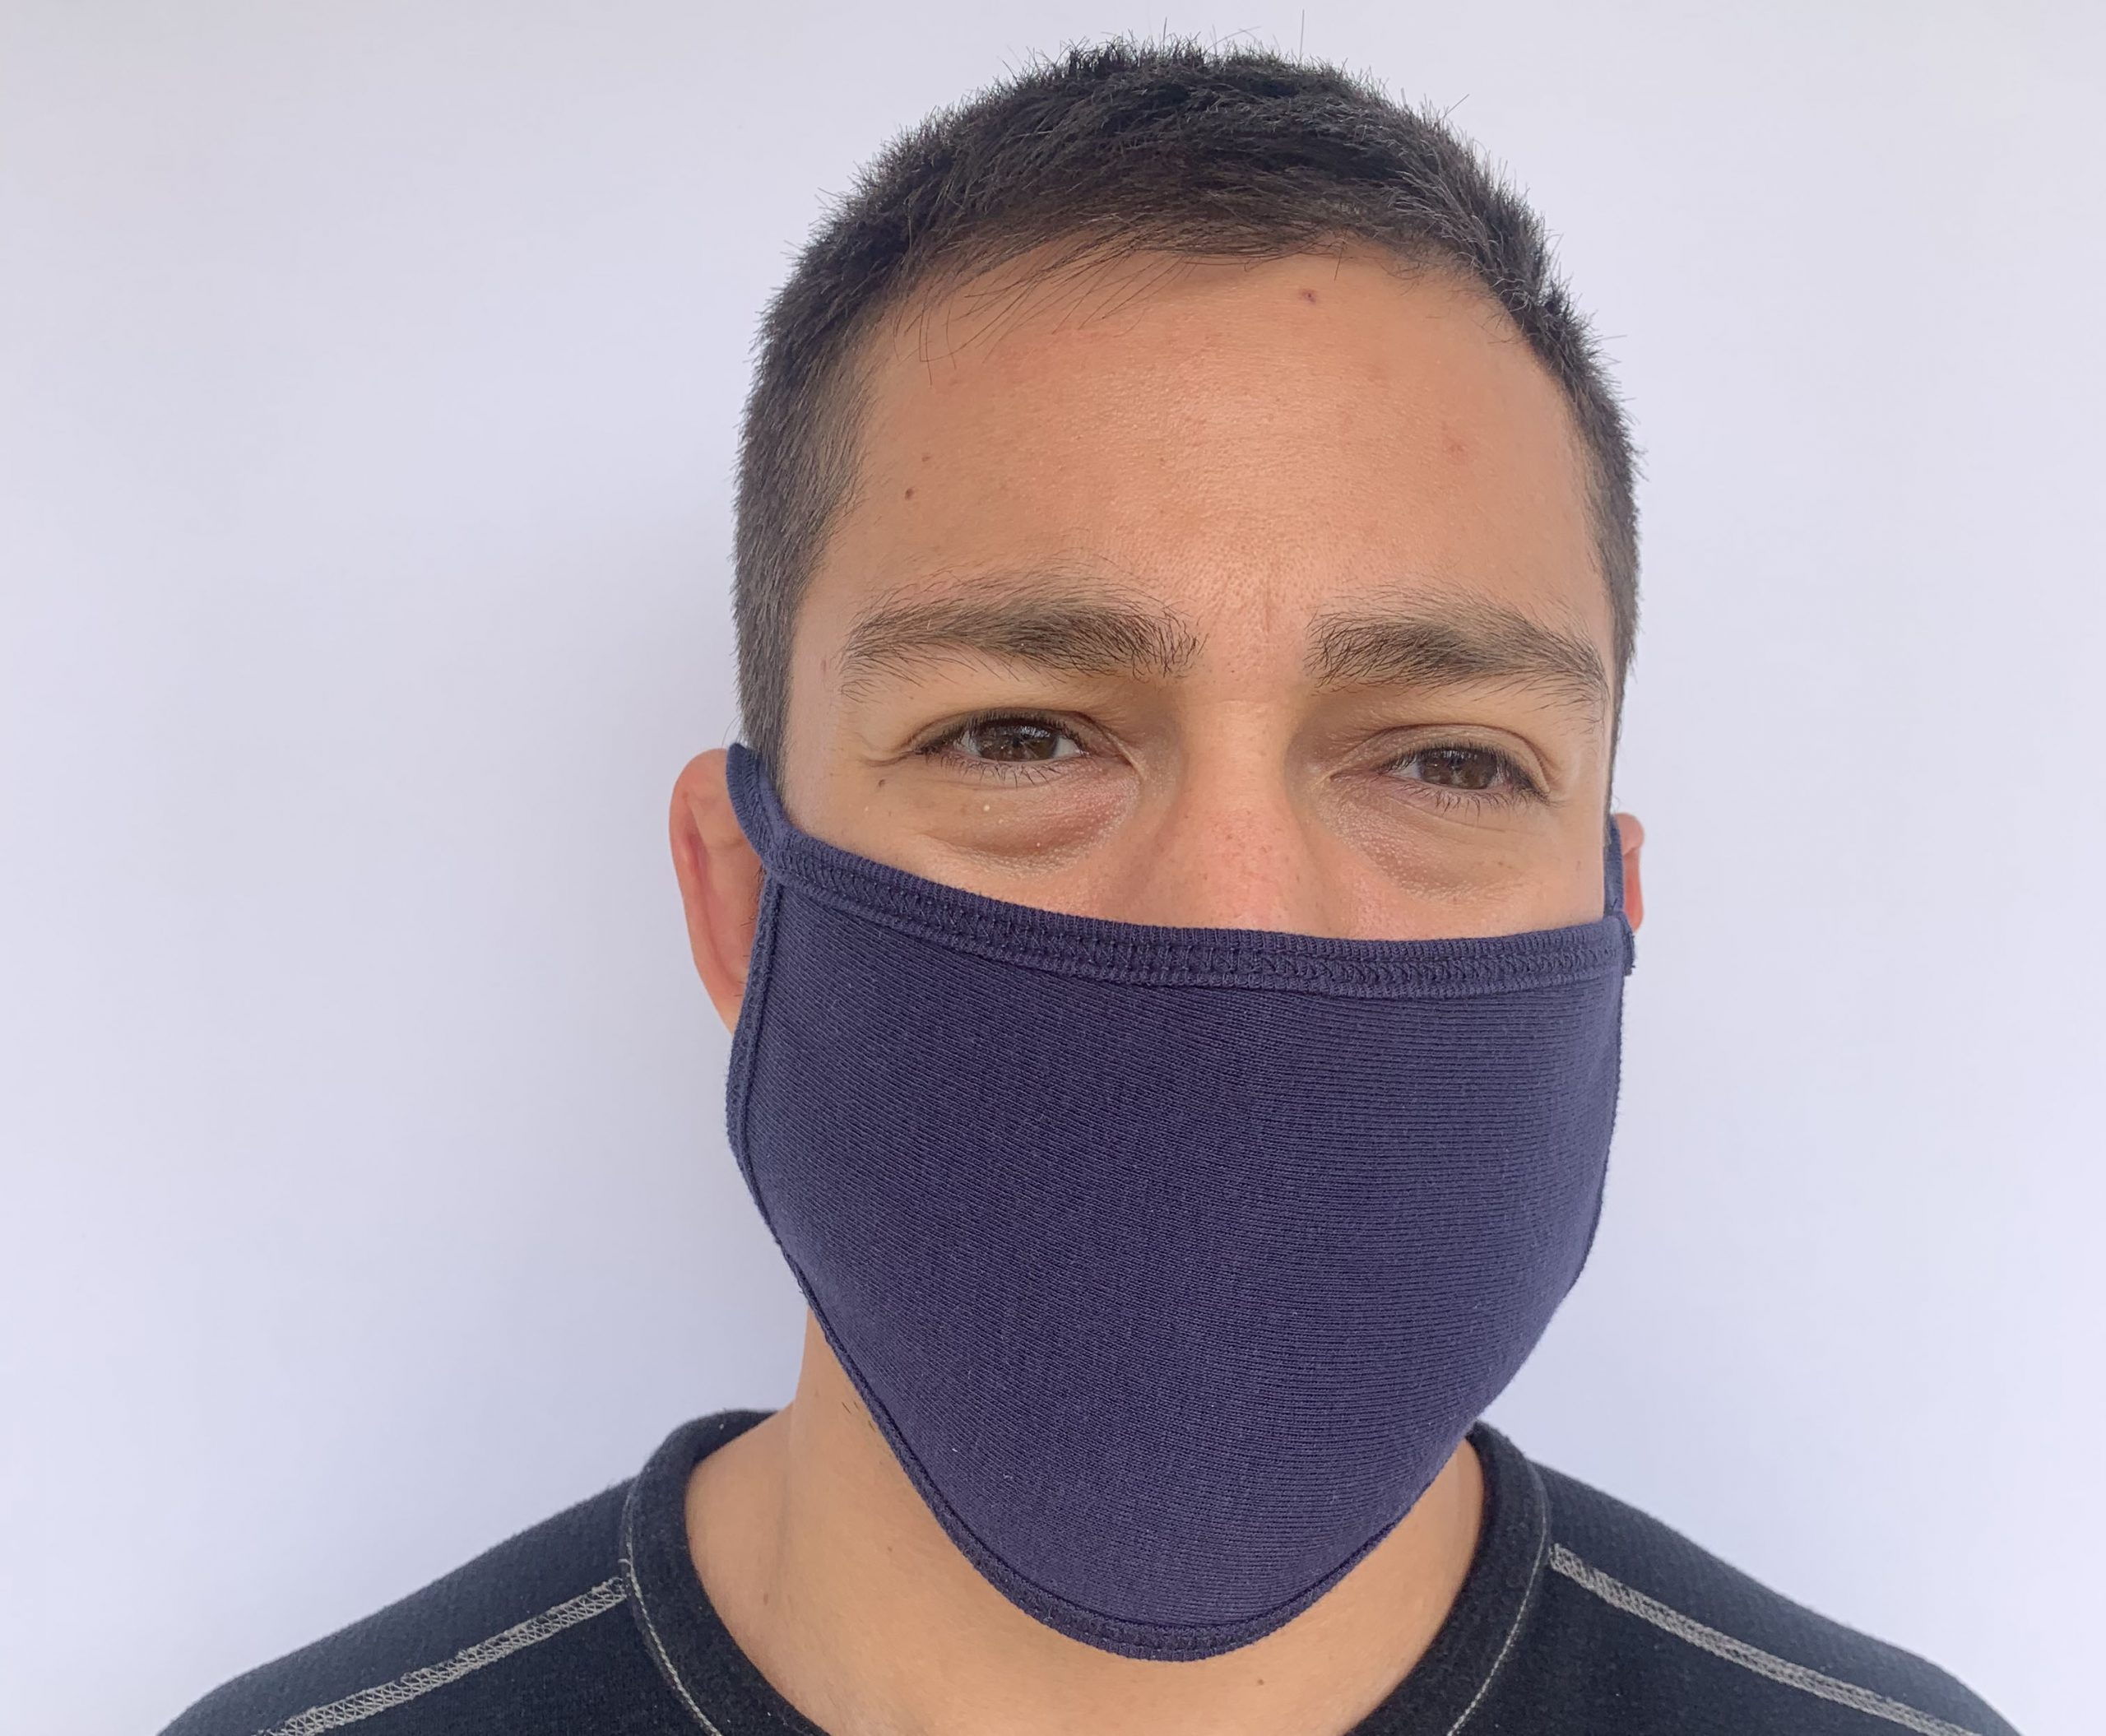 Man in navy face mask